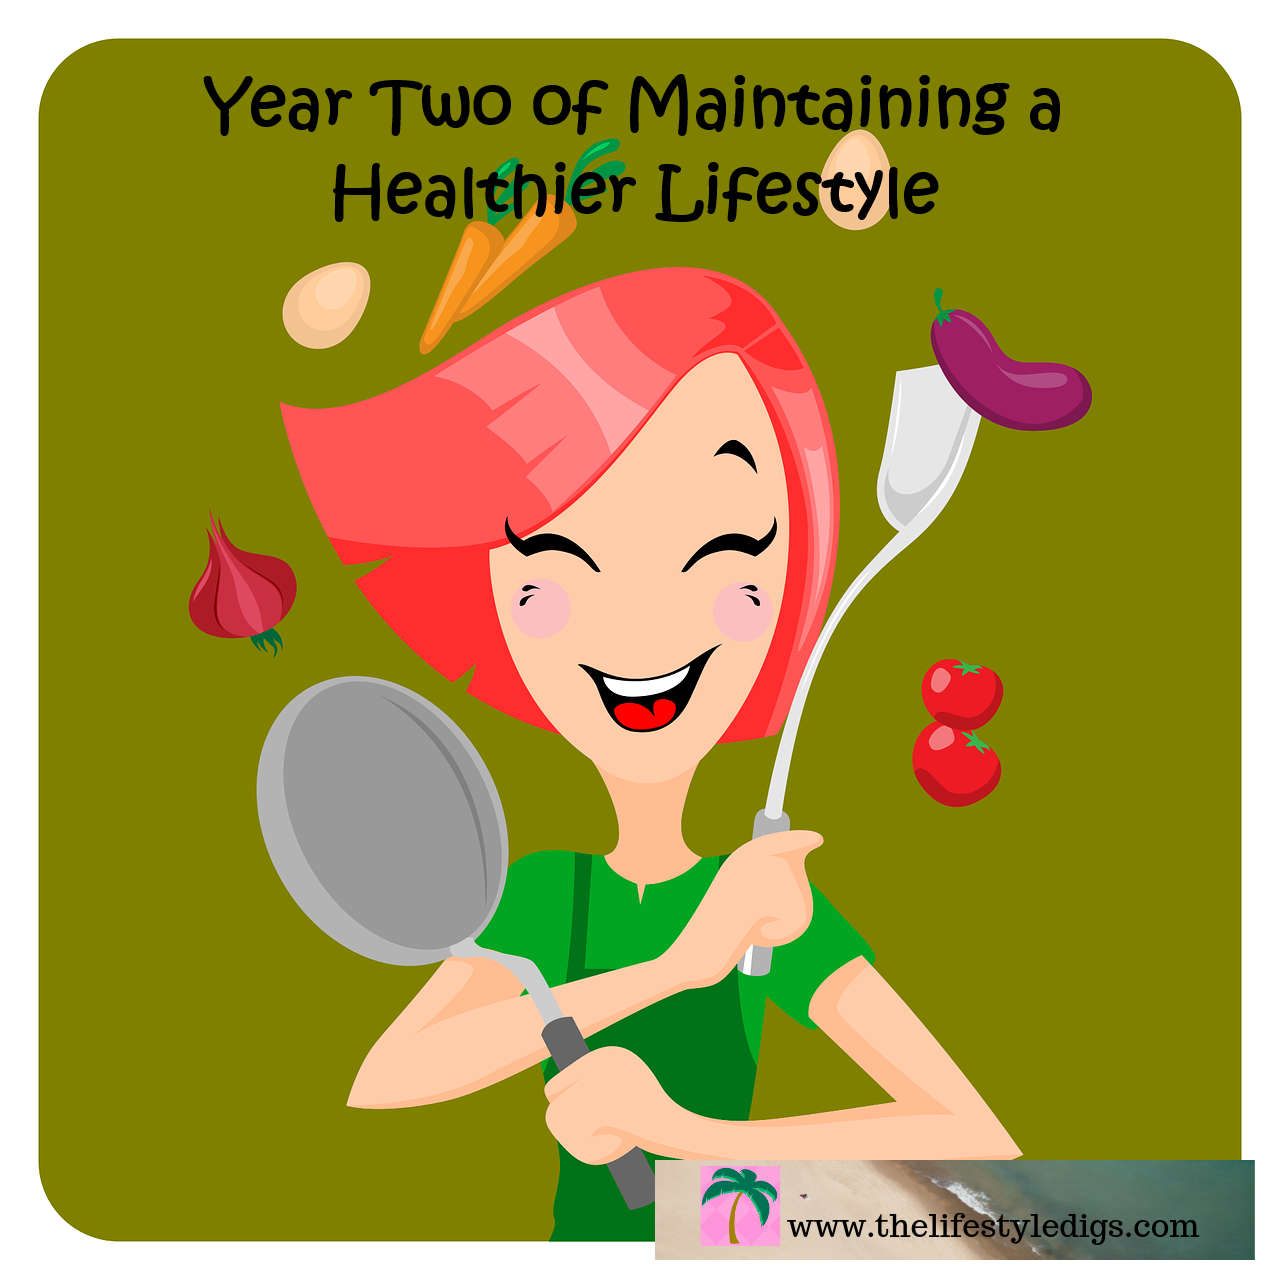 Year Two of Maintaining a Healthier Lifestyle